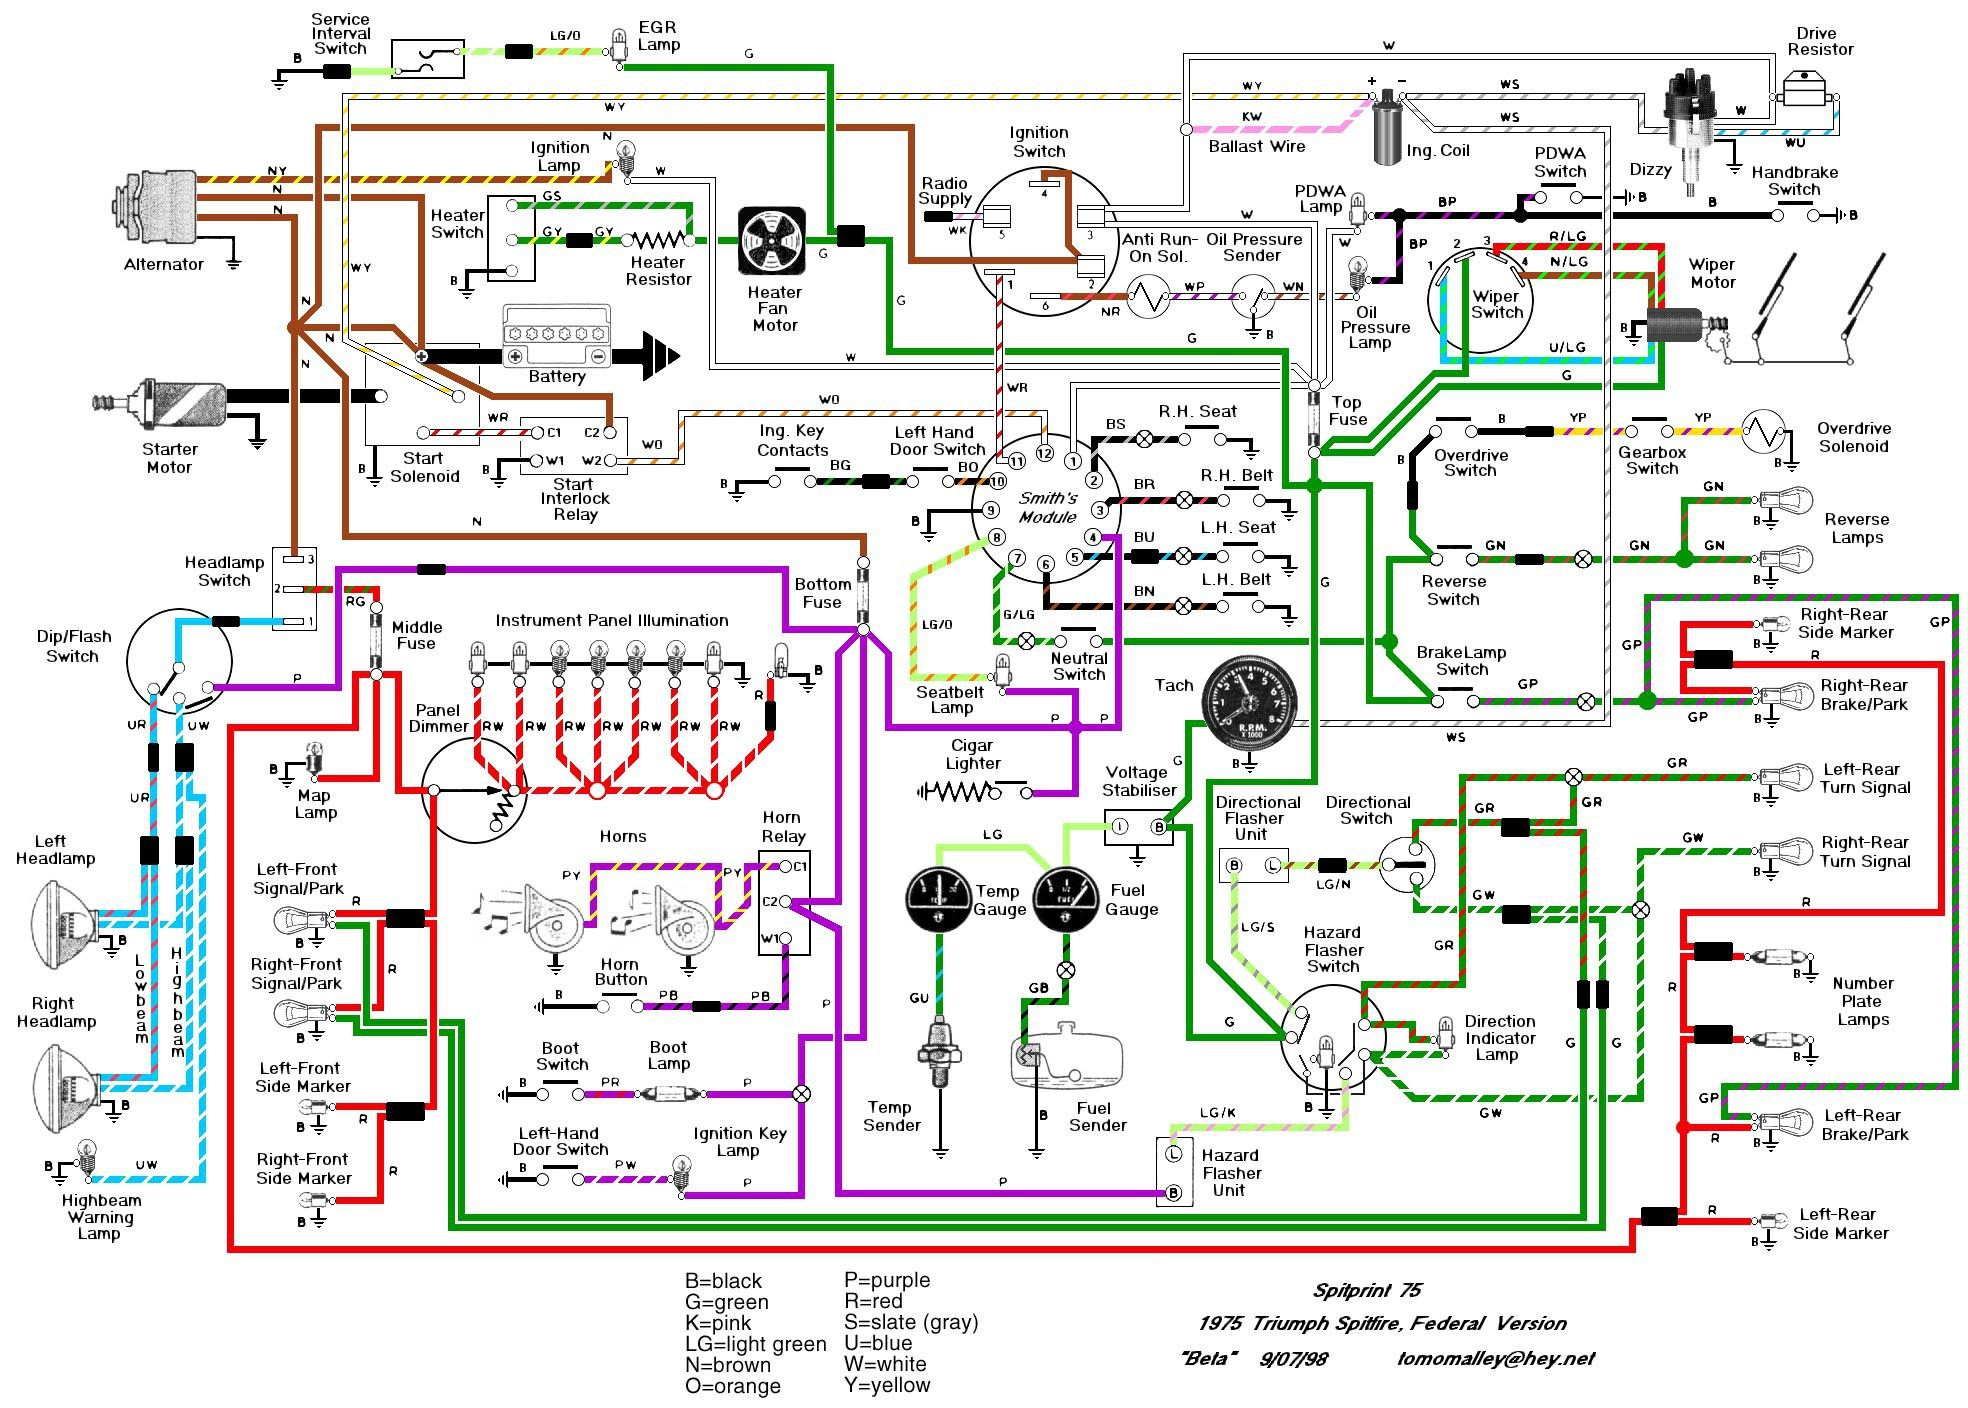 Inspiring 1994 ford rv wiring diagram pictures best image national rv wiring diagram free auto repair manuals class asfbconference2016 Gallery